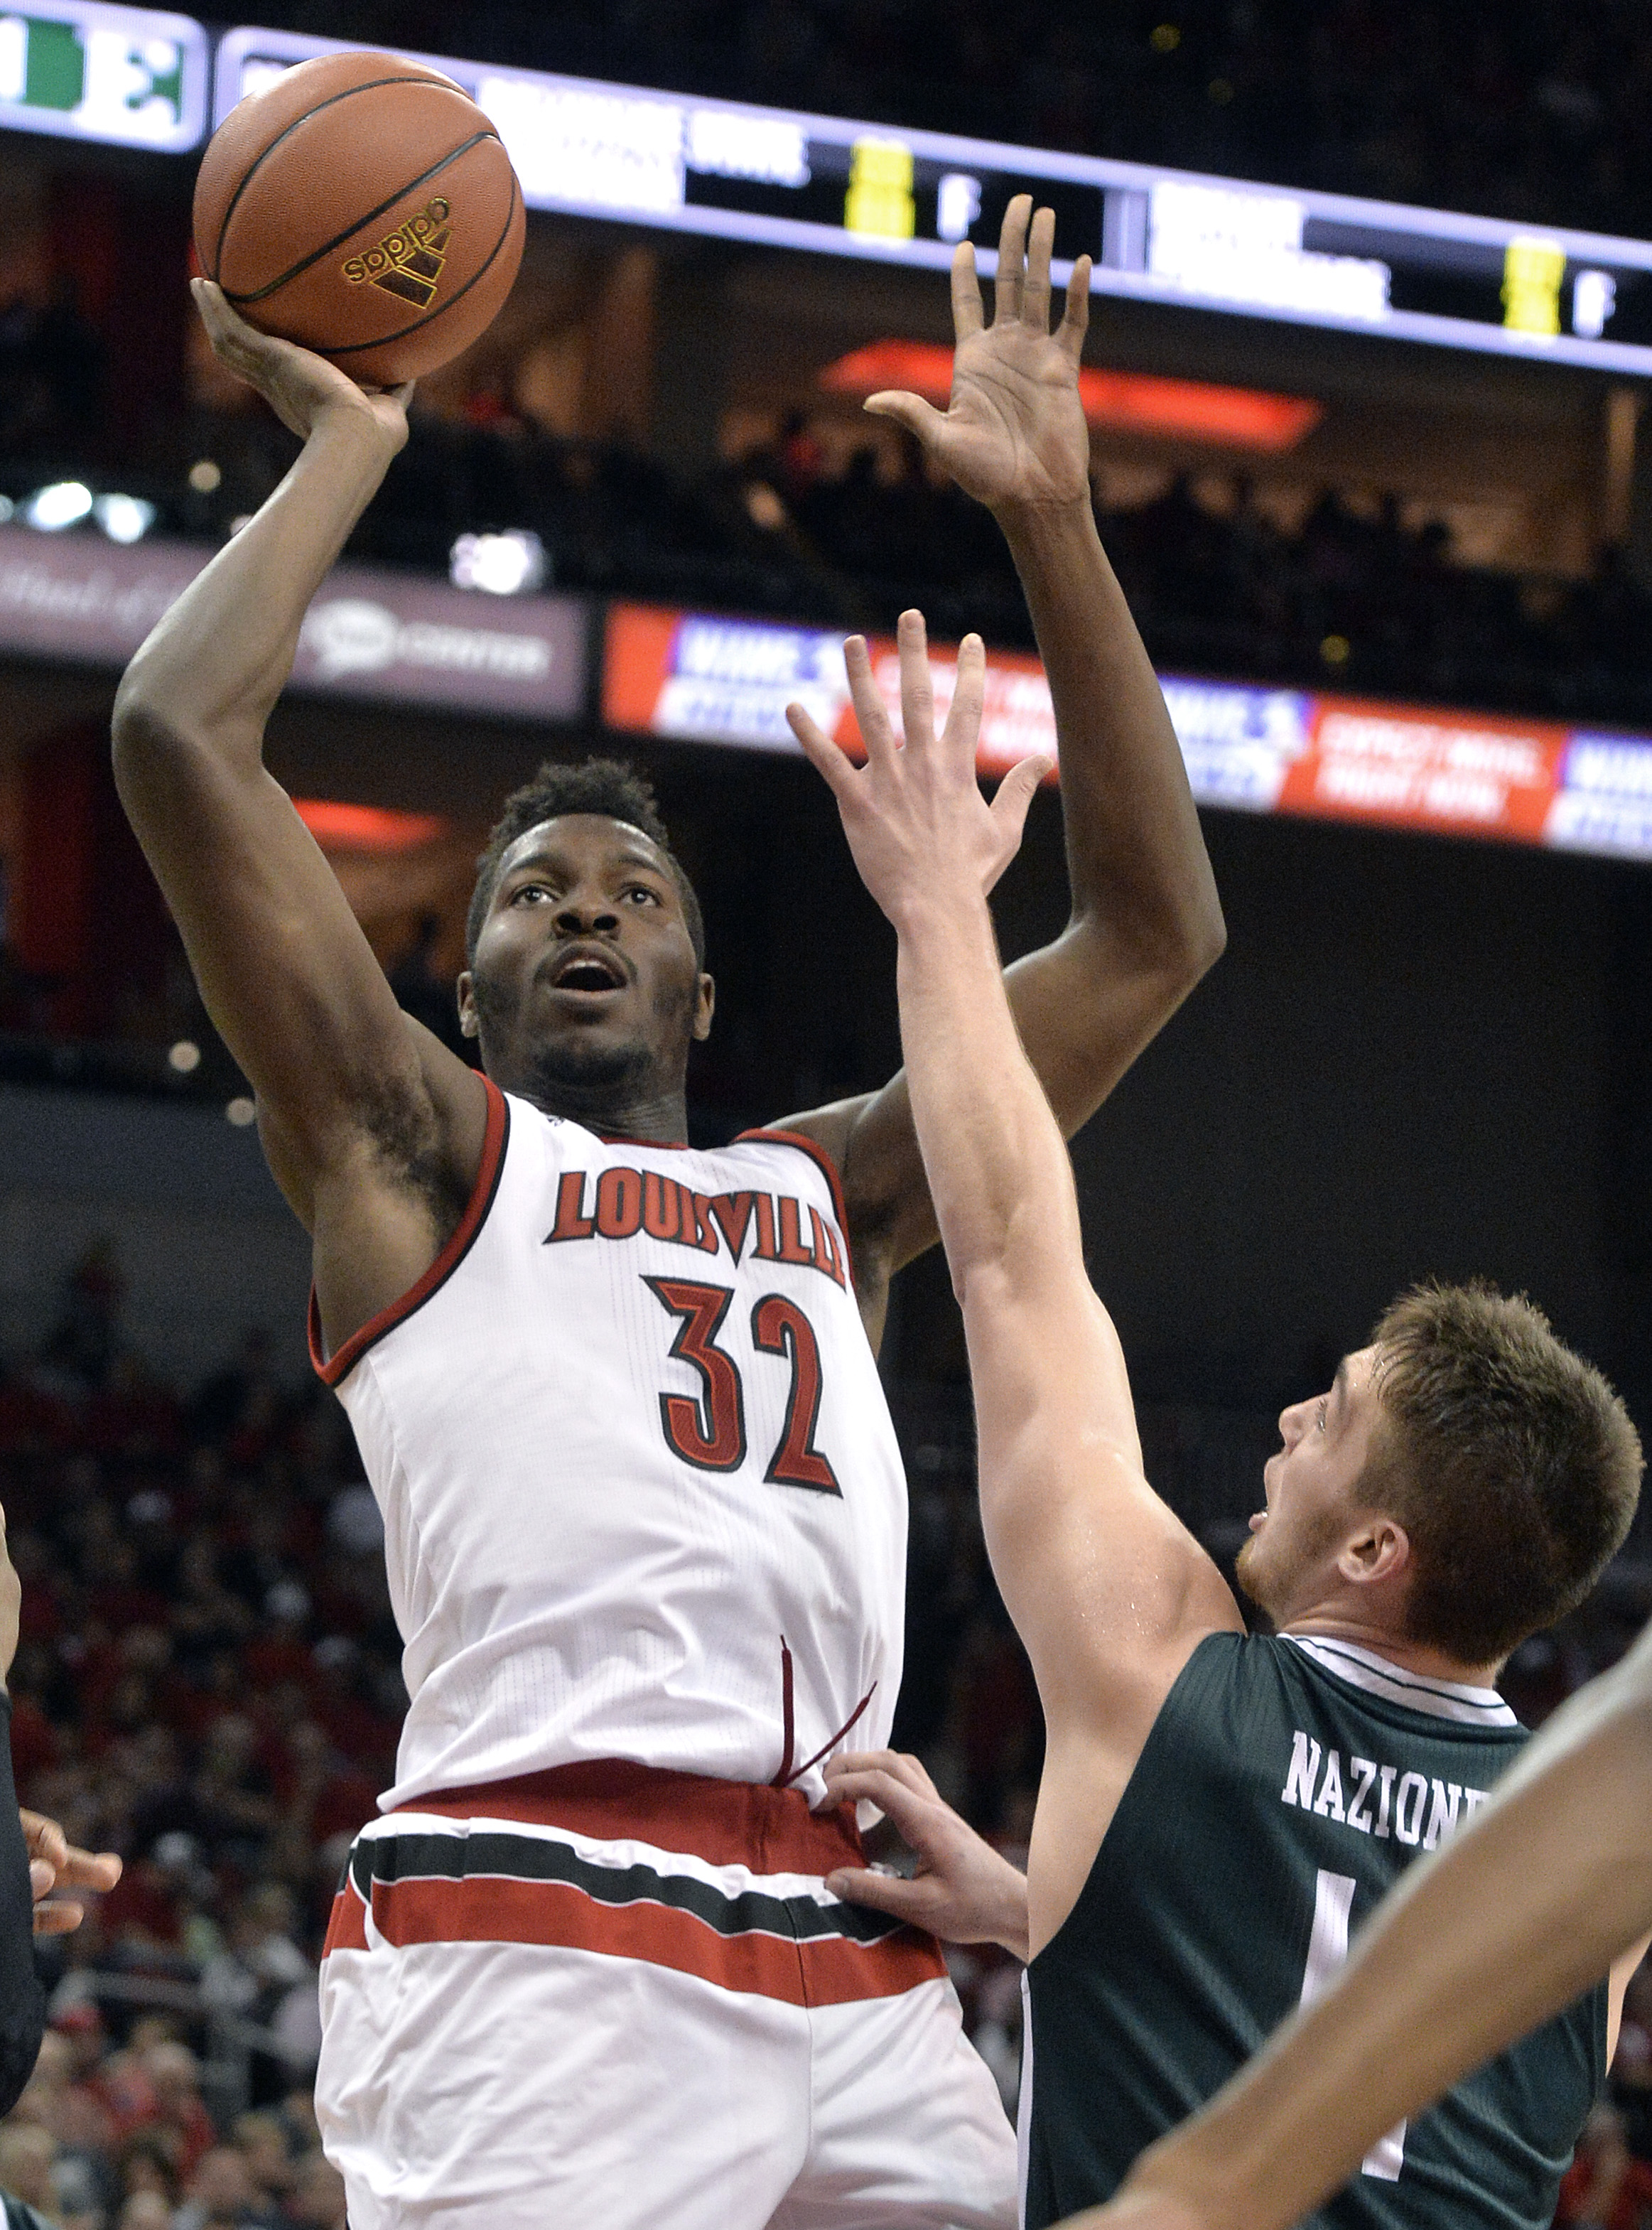 Louisville's Chinanu Onuaku (32) puts up a shot over the defense of Eastern Michigan's Brandon Nazione (4) during the second half of an NCAA college basketball game, Saturday, Dec. 12, 2015, in Louisville, Ky. Louisville won 86-53. (AP Photo/Timothy D. Ea